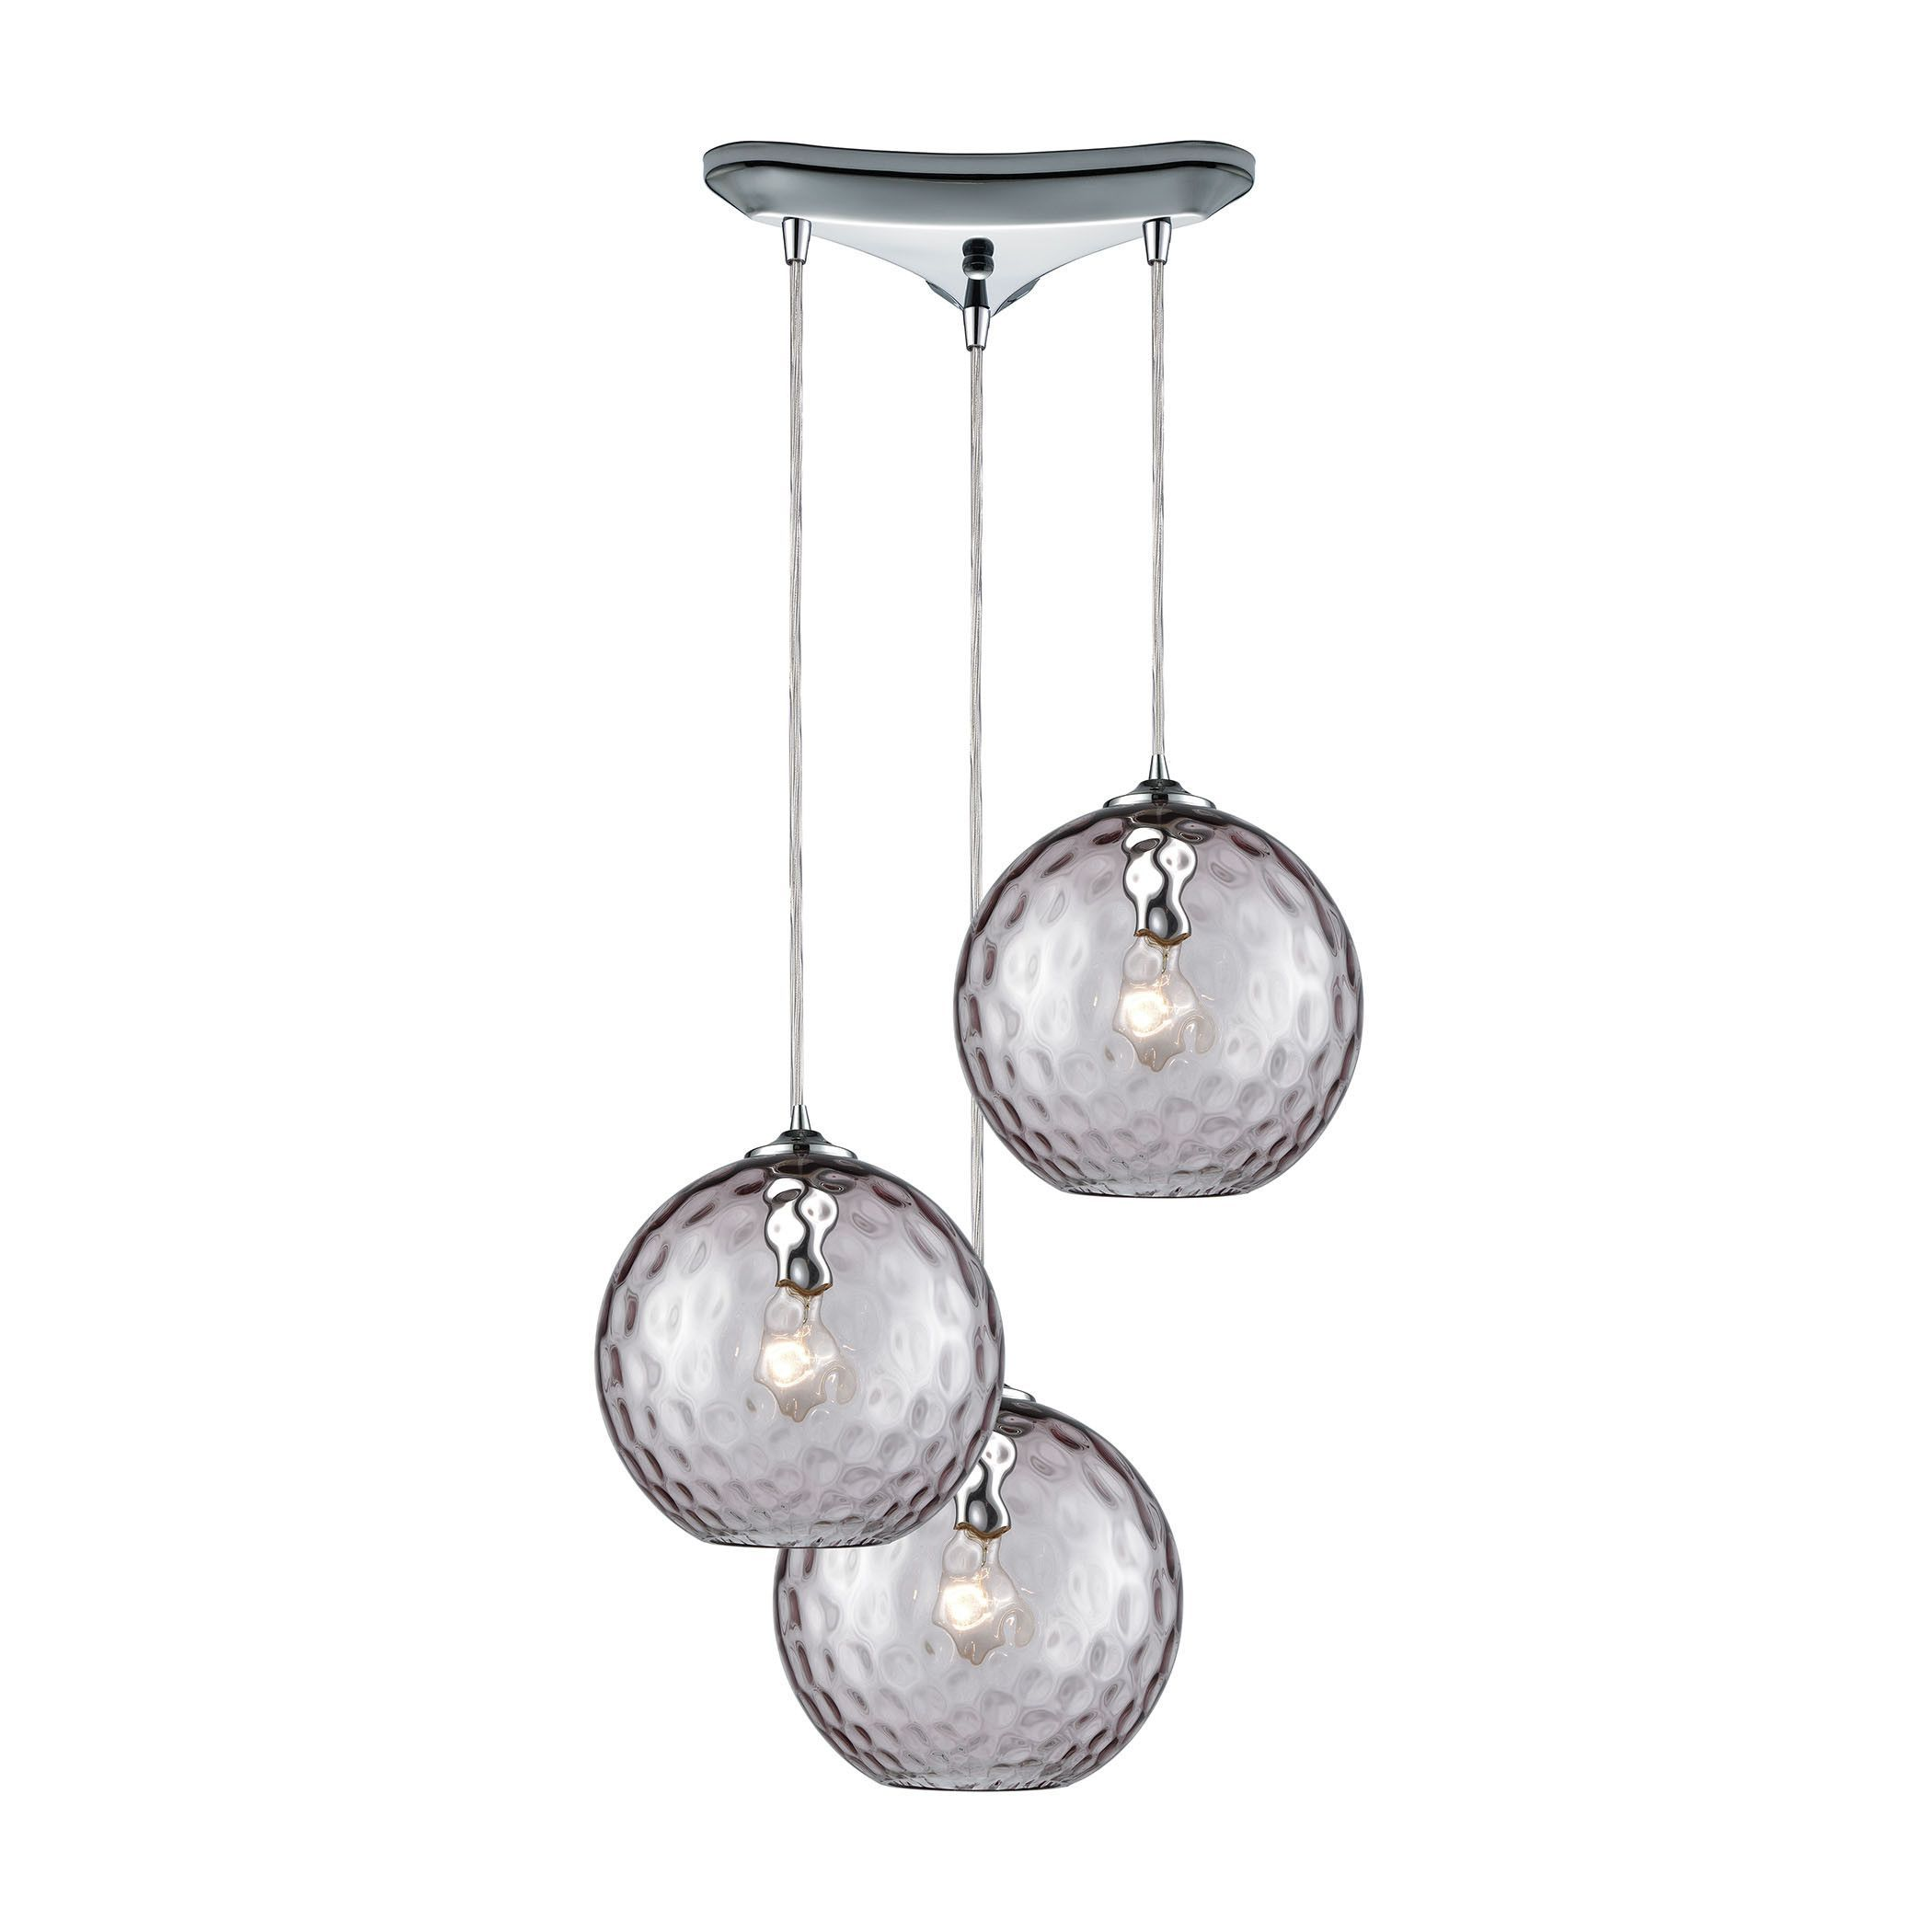 Watersphere 3 Light Triangle Pan Fixture In Polished Chrome With ...